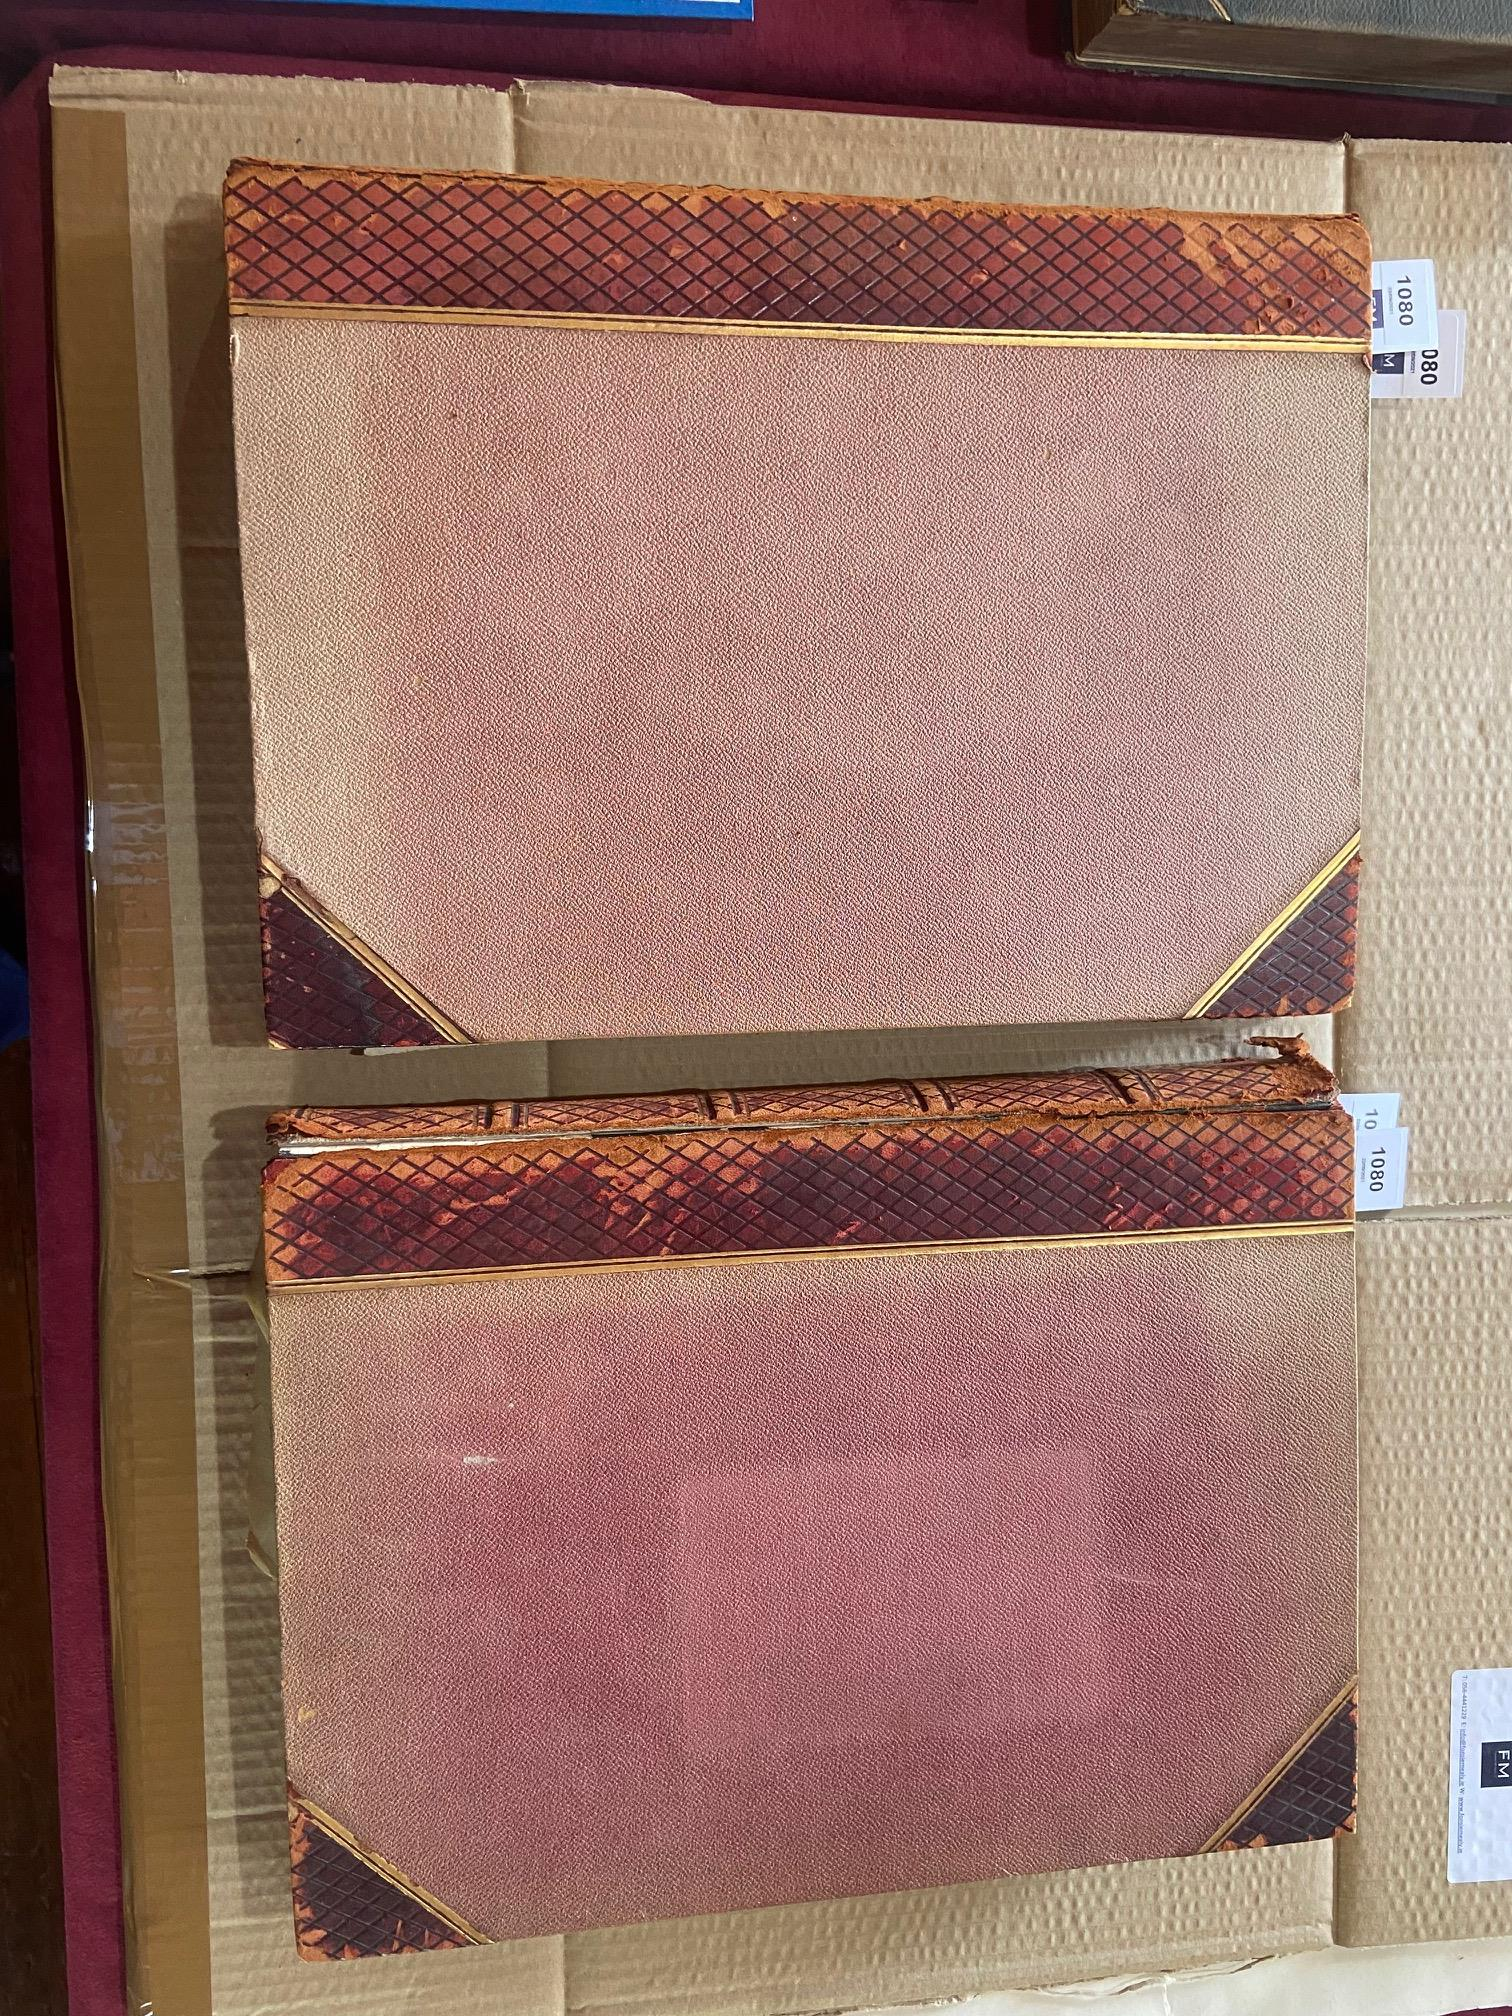 Photographs: Two large folio Albums of Photographs, each c. 1870 - 1890's. One Album contains - Image 31 of 31